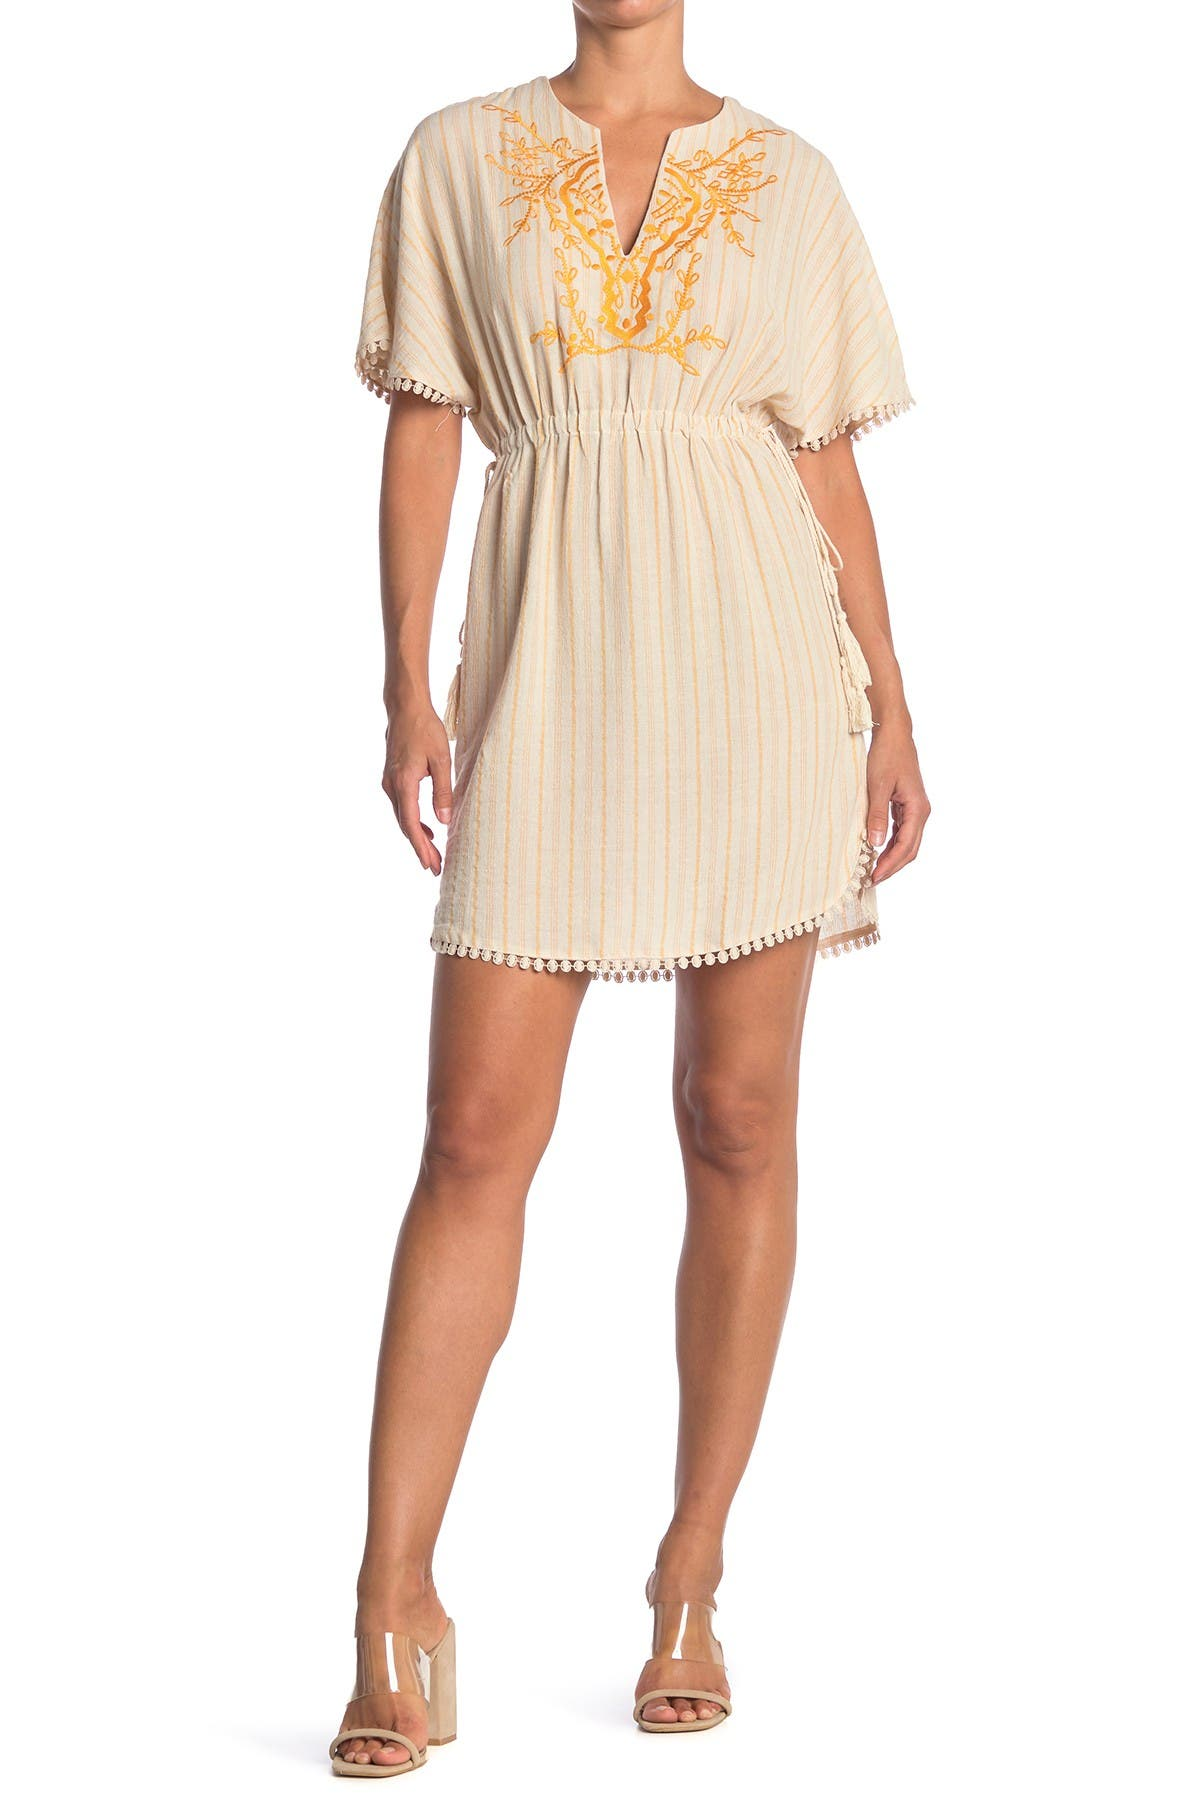 Image of ALL IN FAVOR Embroidered Dress